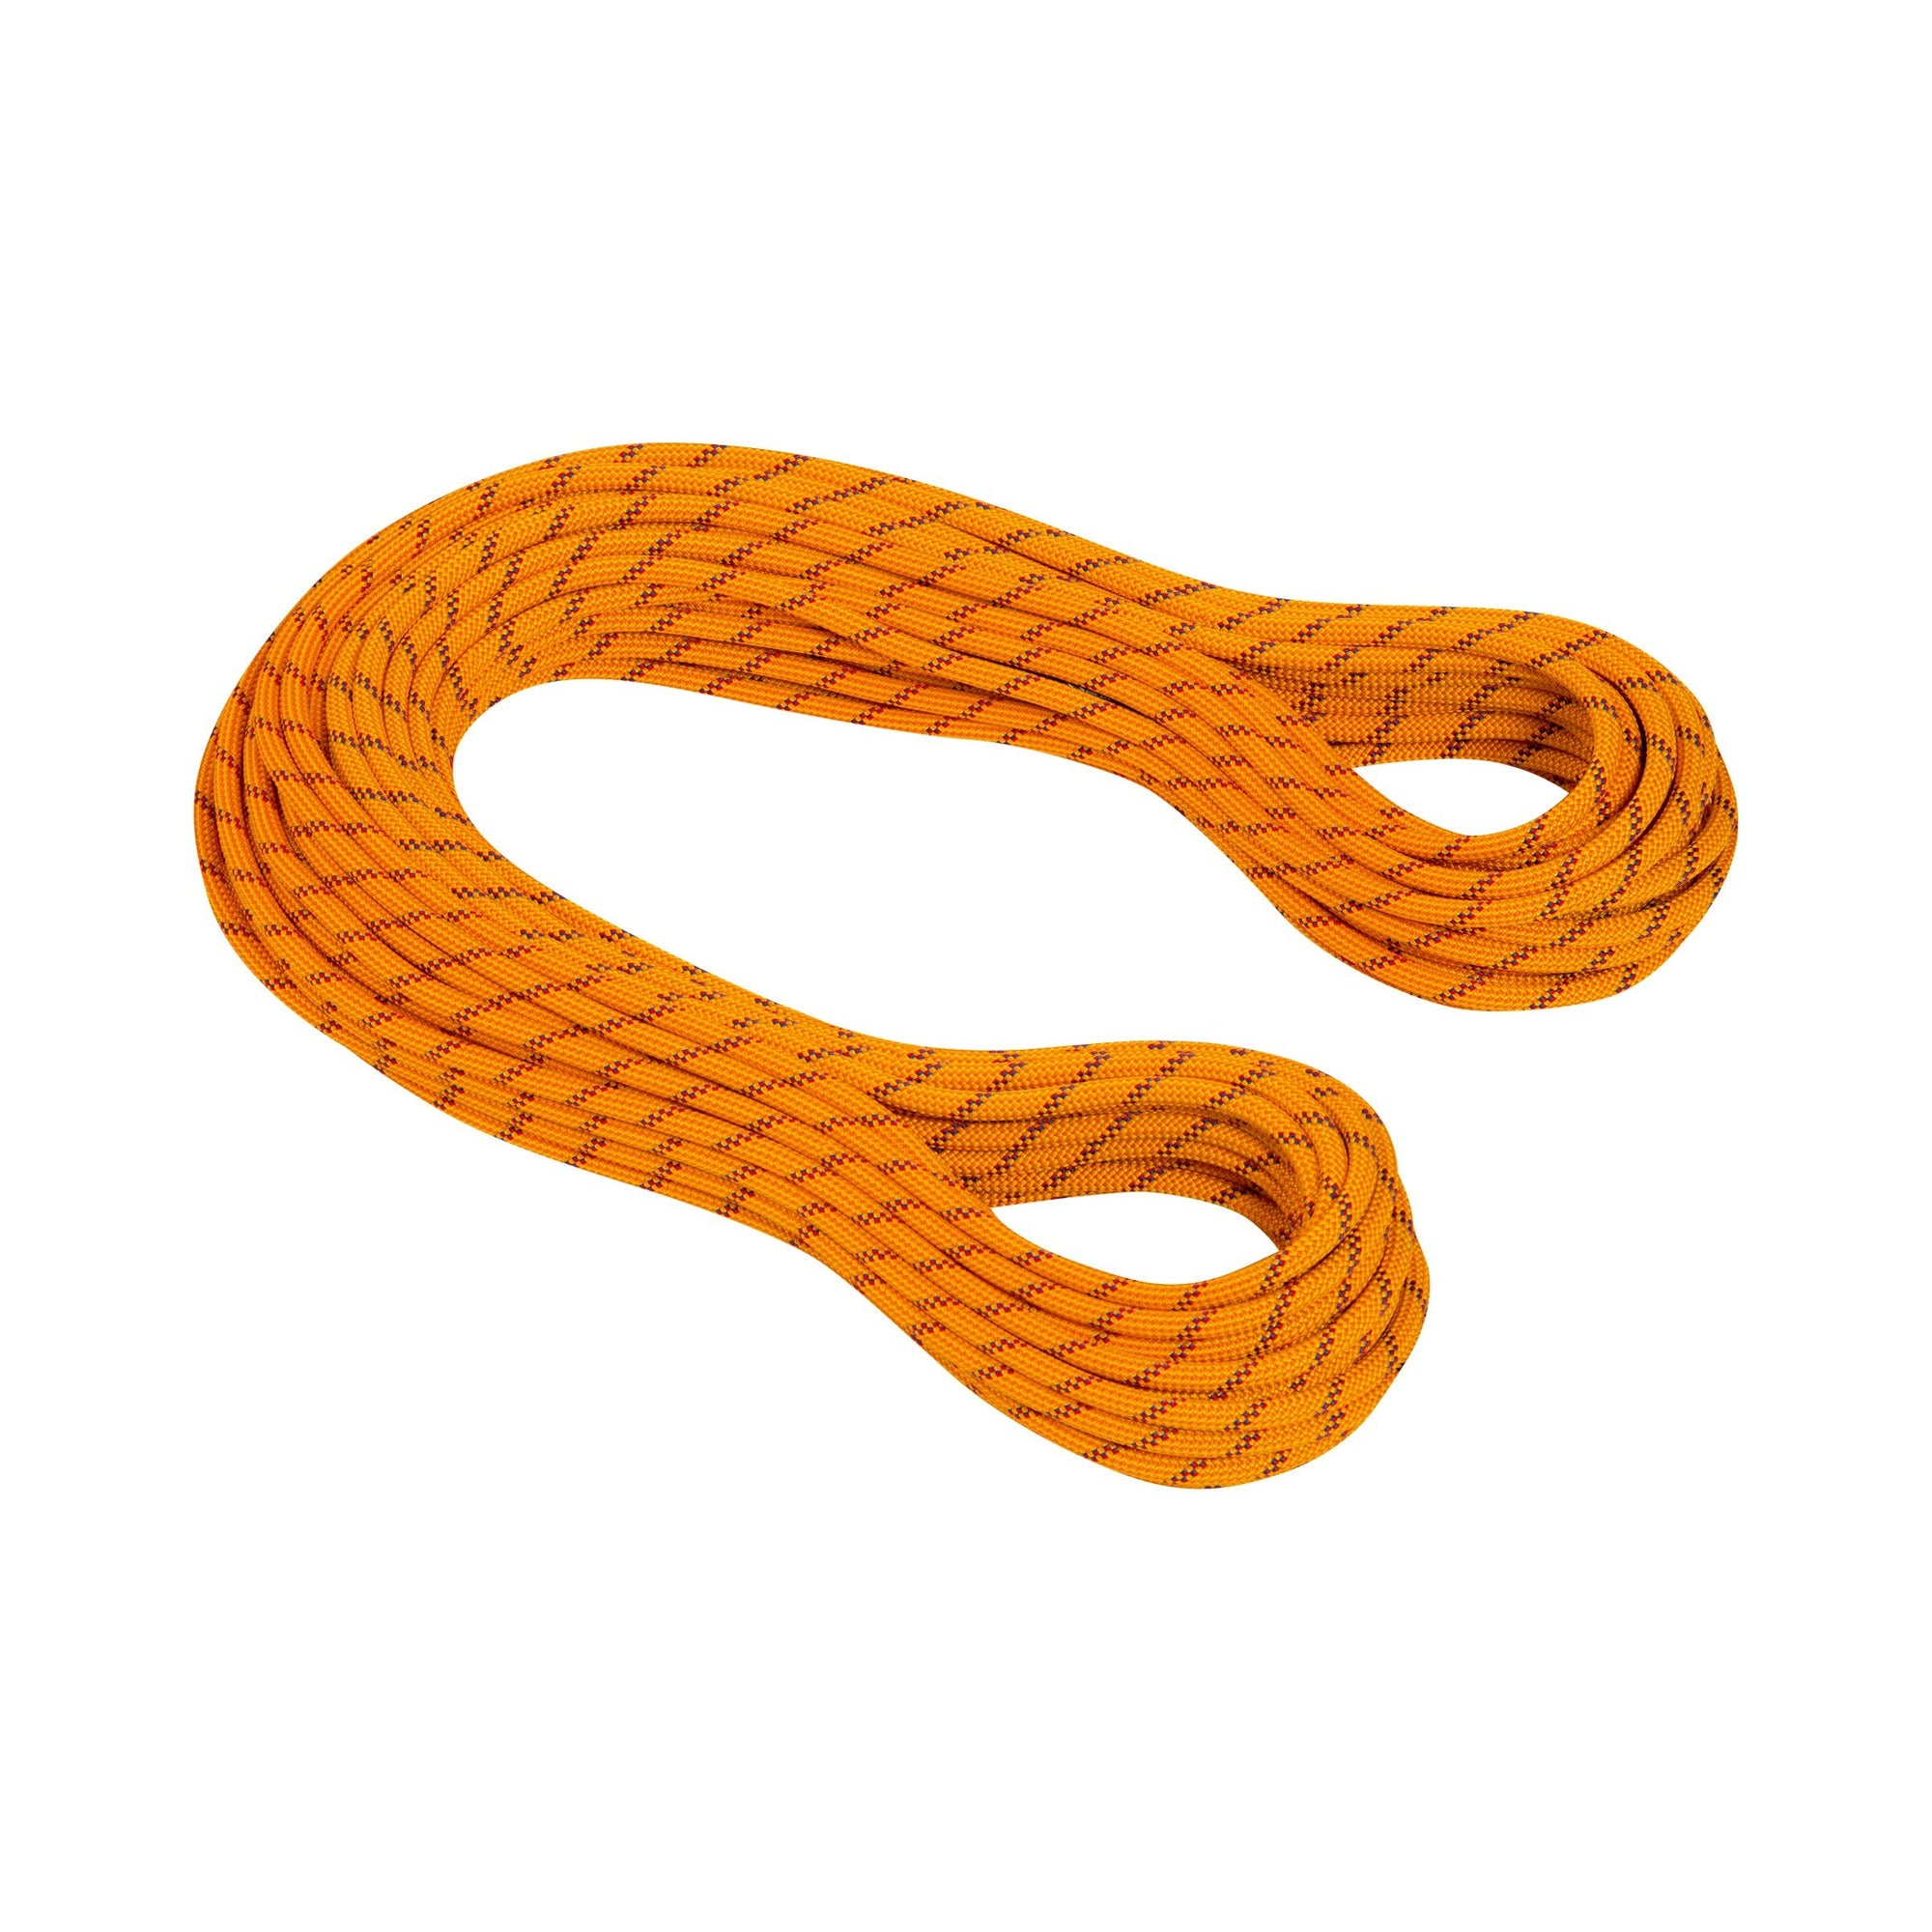 2 Mammut Genesis Dry 8.5mm x 50m climbing ropes, in orange and red colour